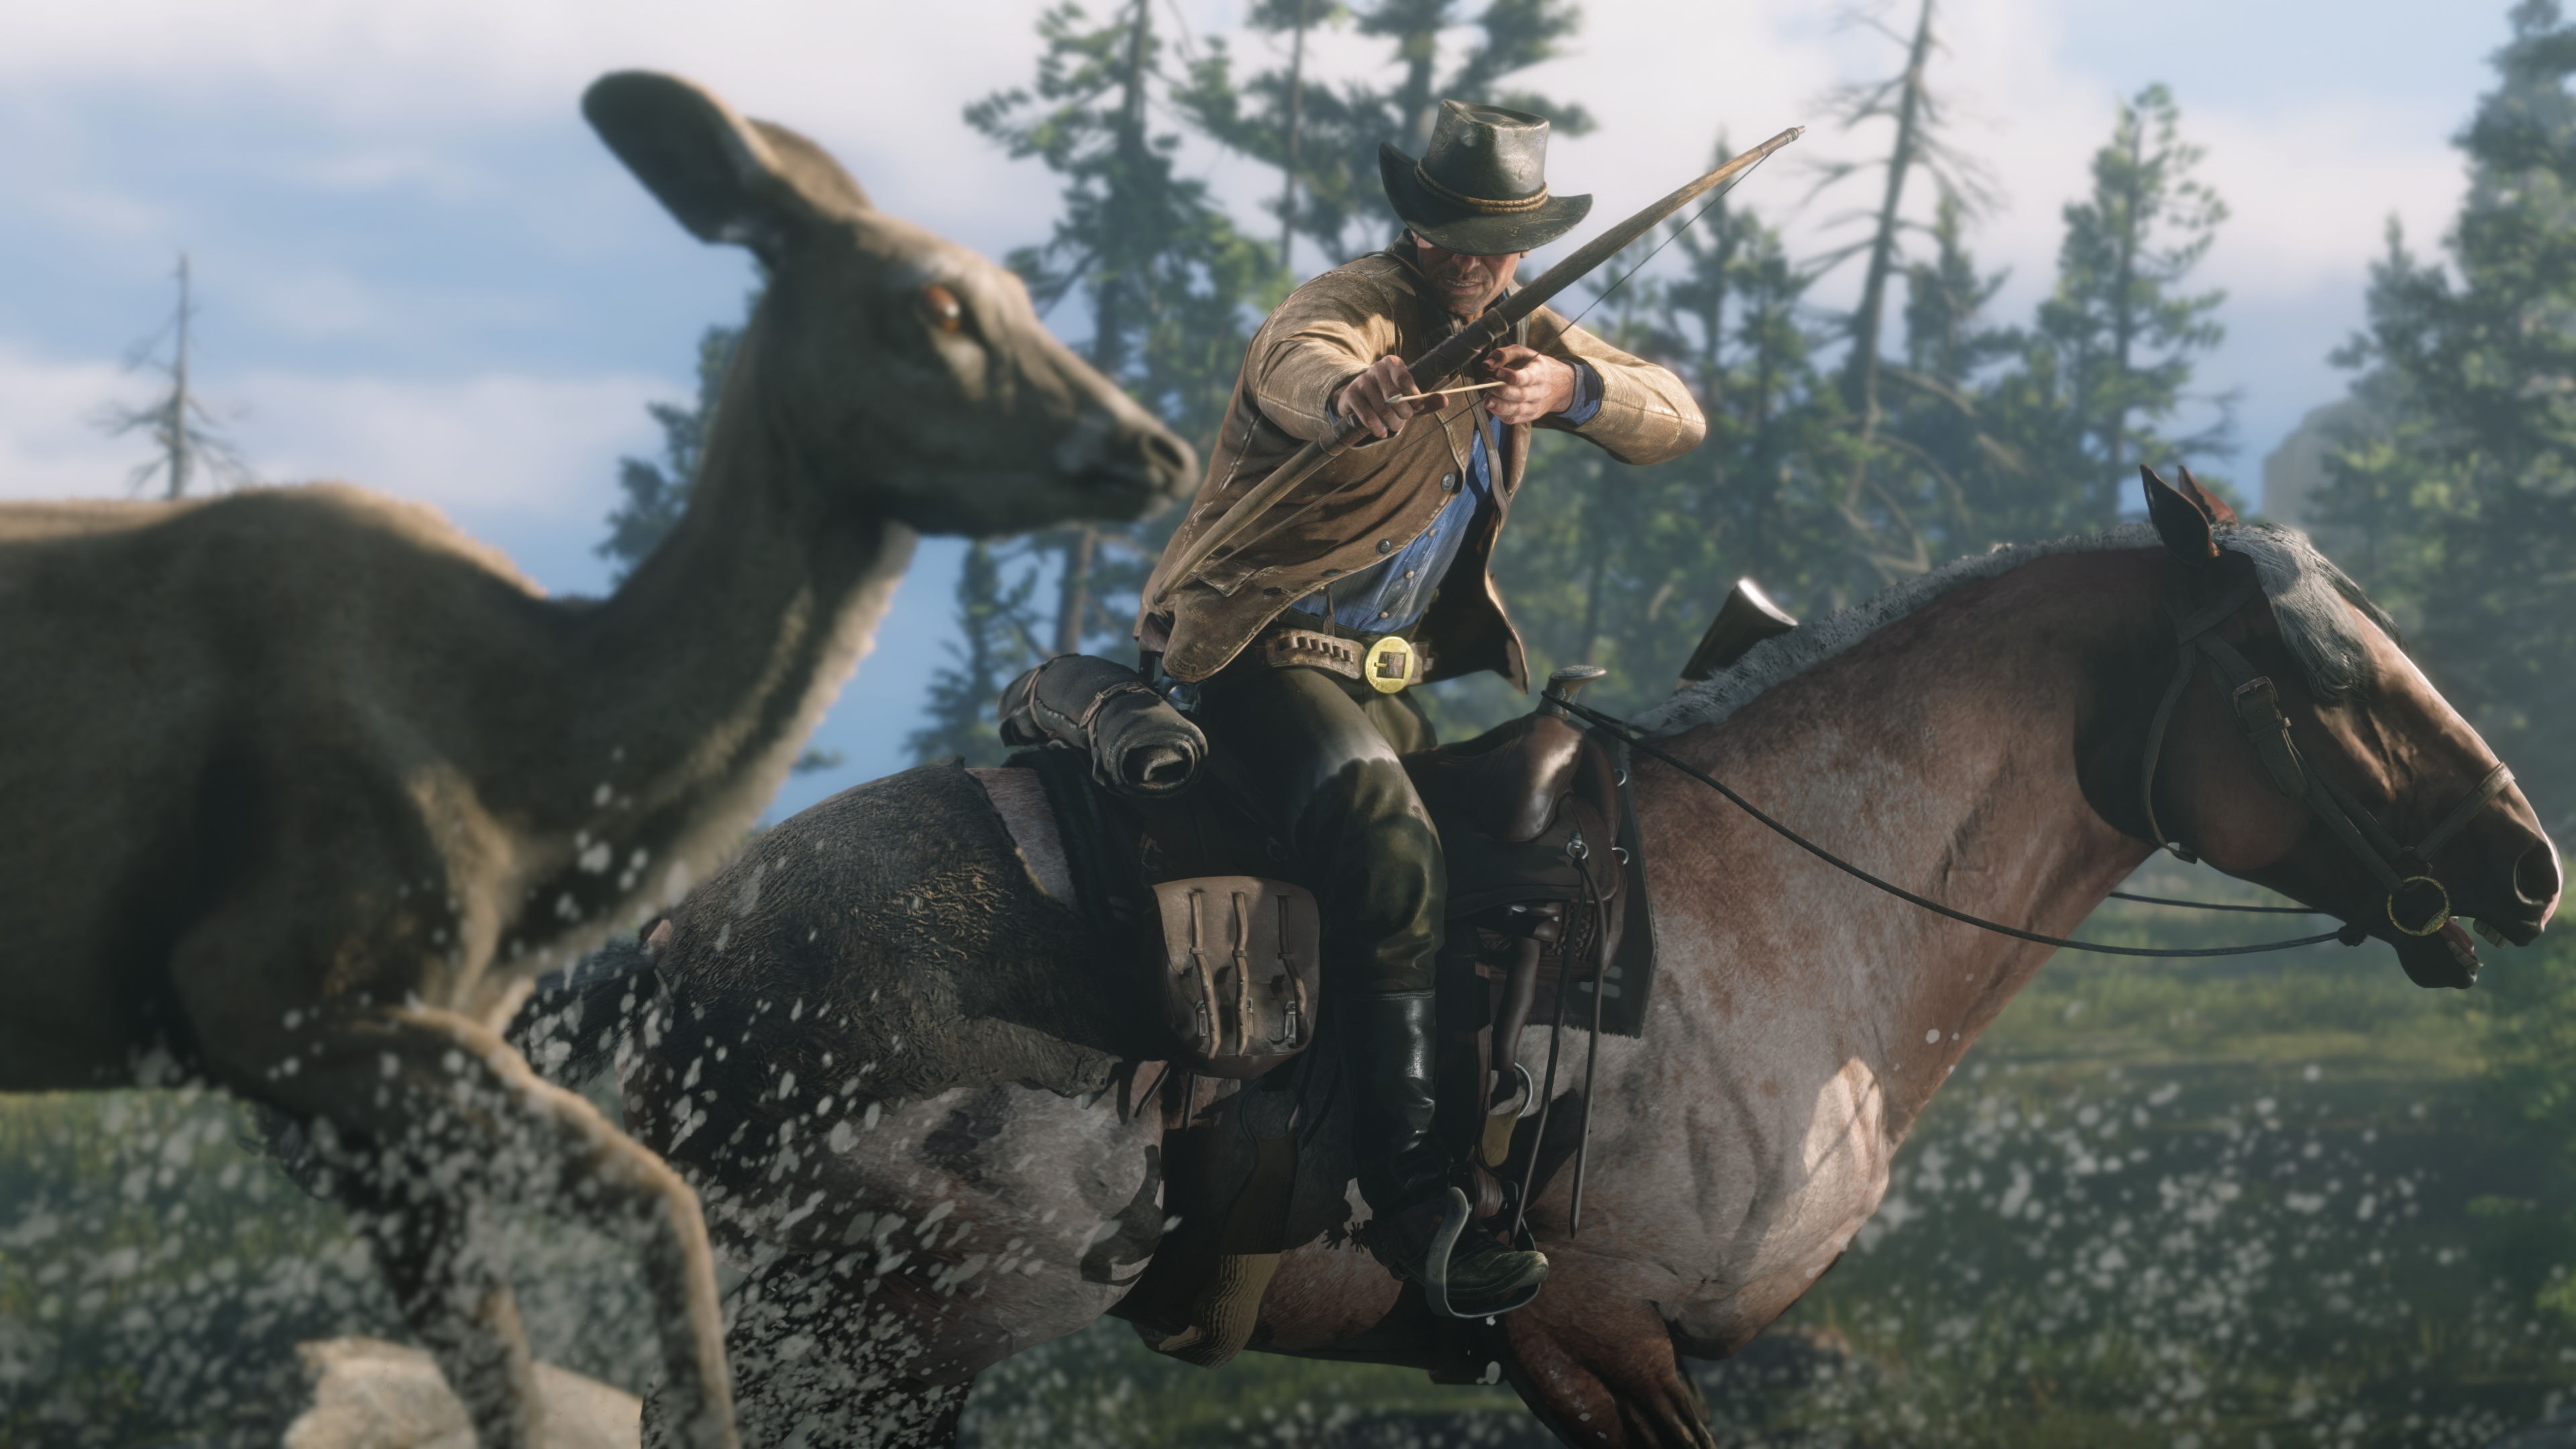 Red Dead Redemption 2 helps people learn about animals when not shooting them